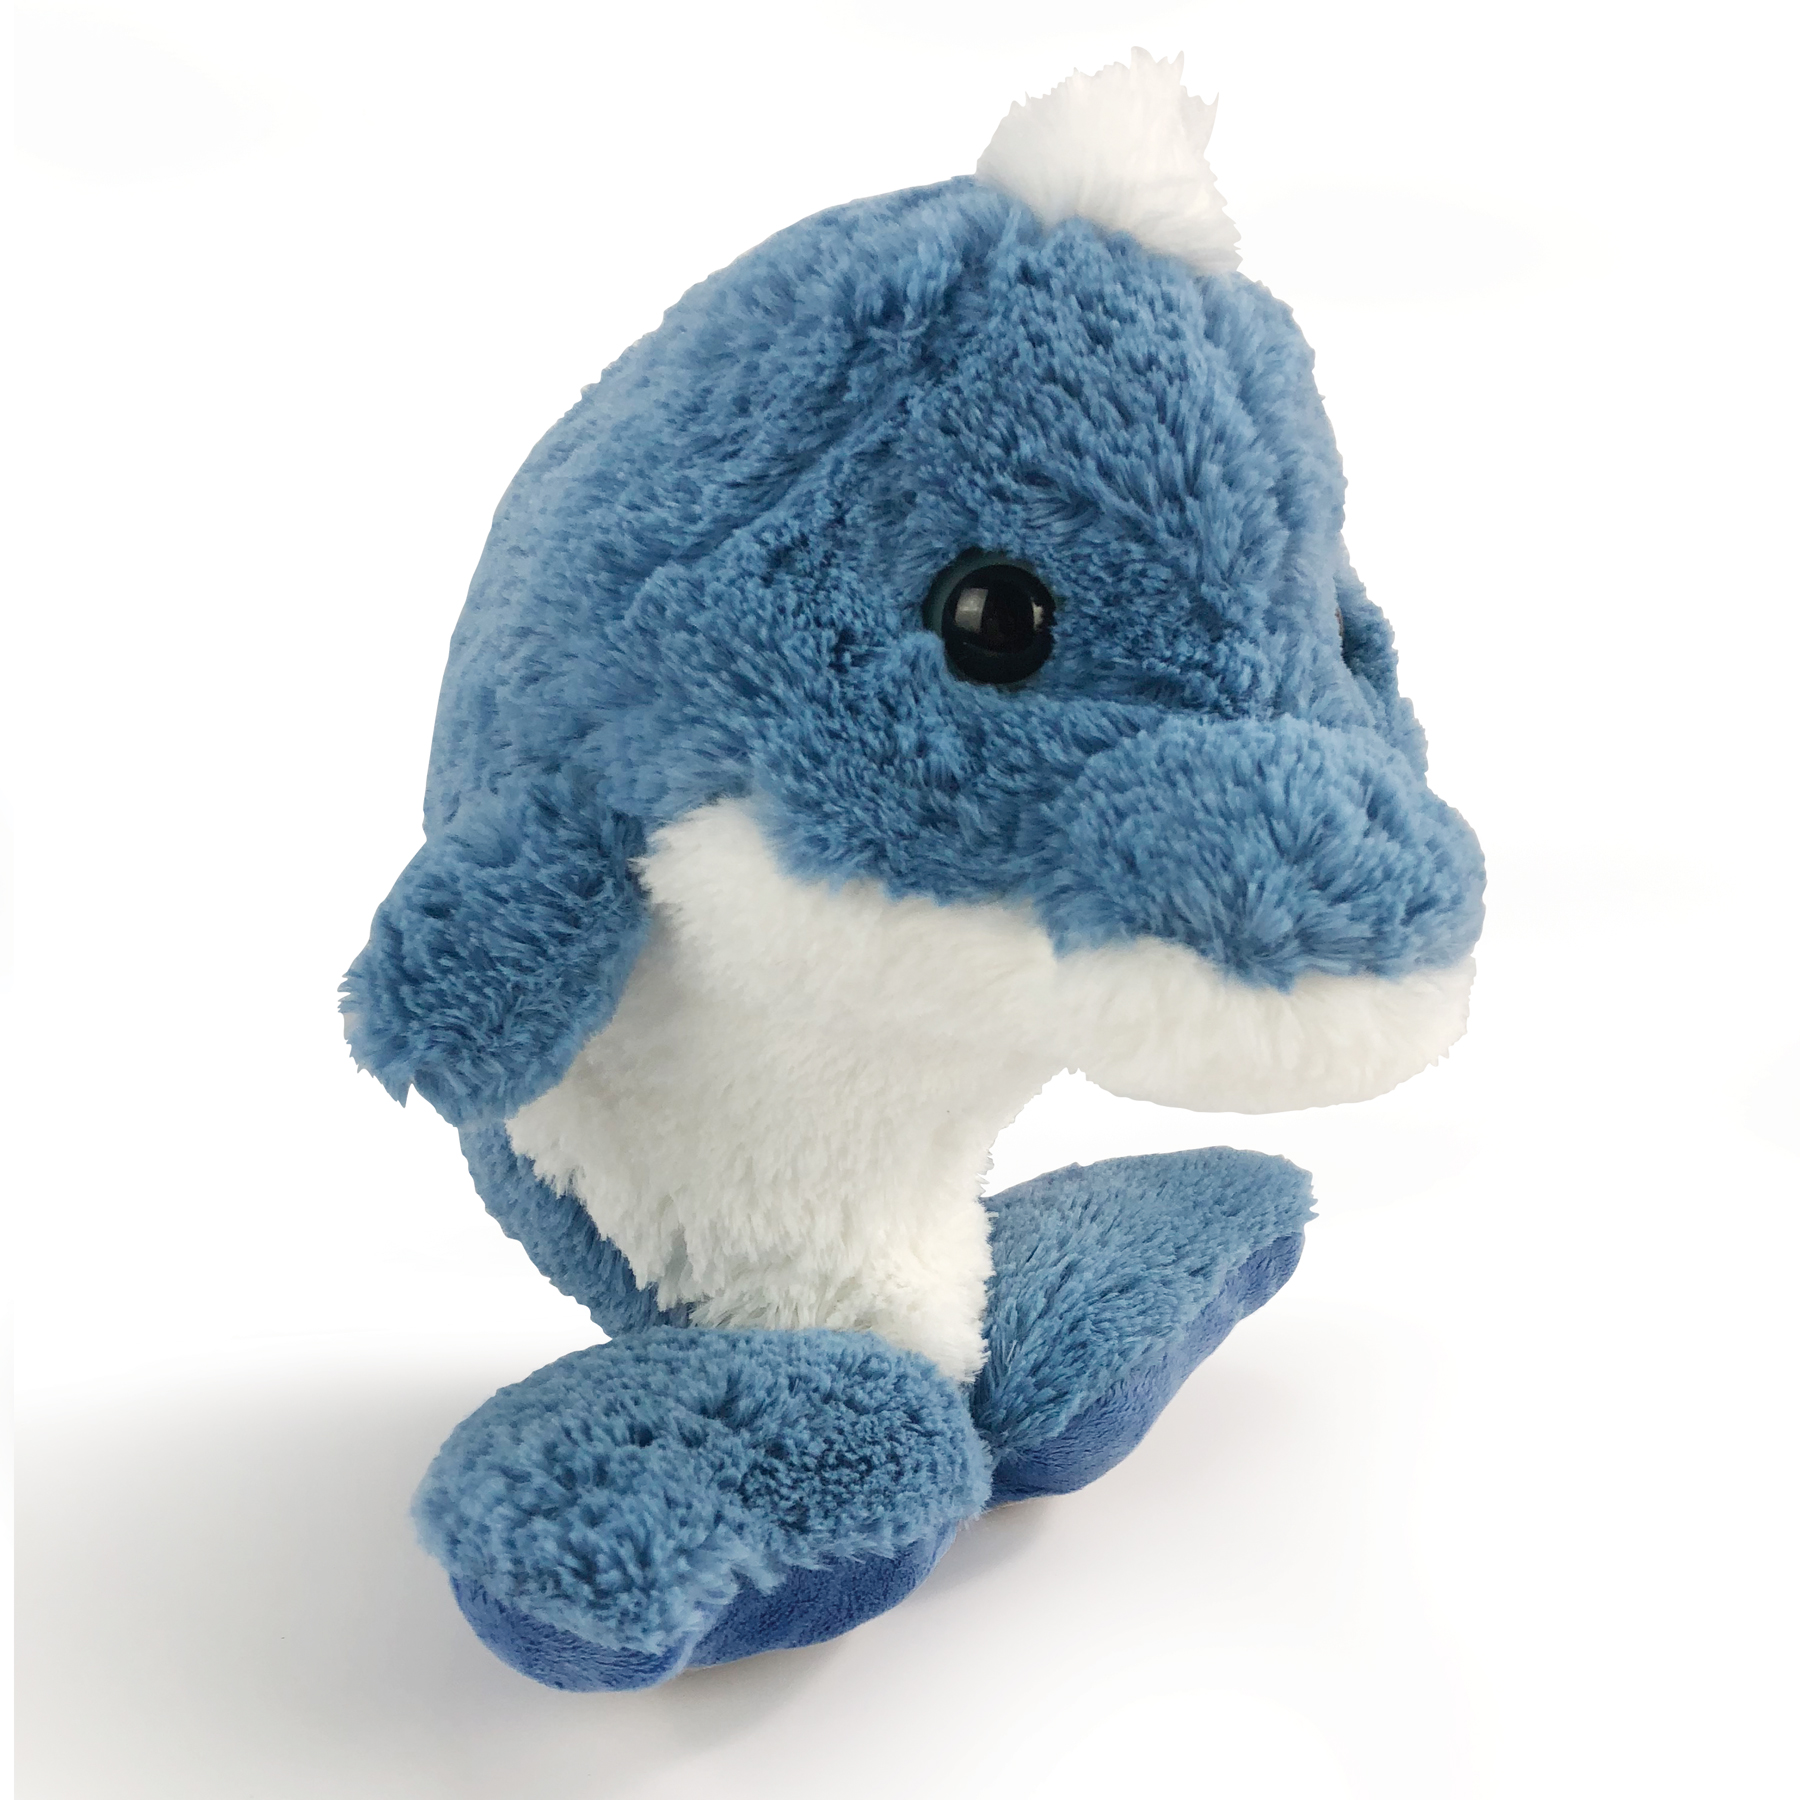 Stuffed Dolphin | Plush Dolphin Toy